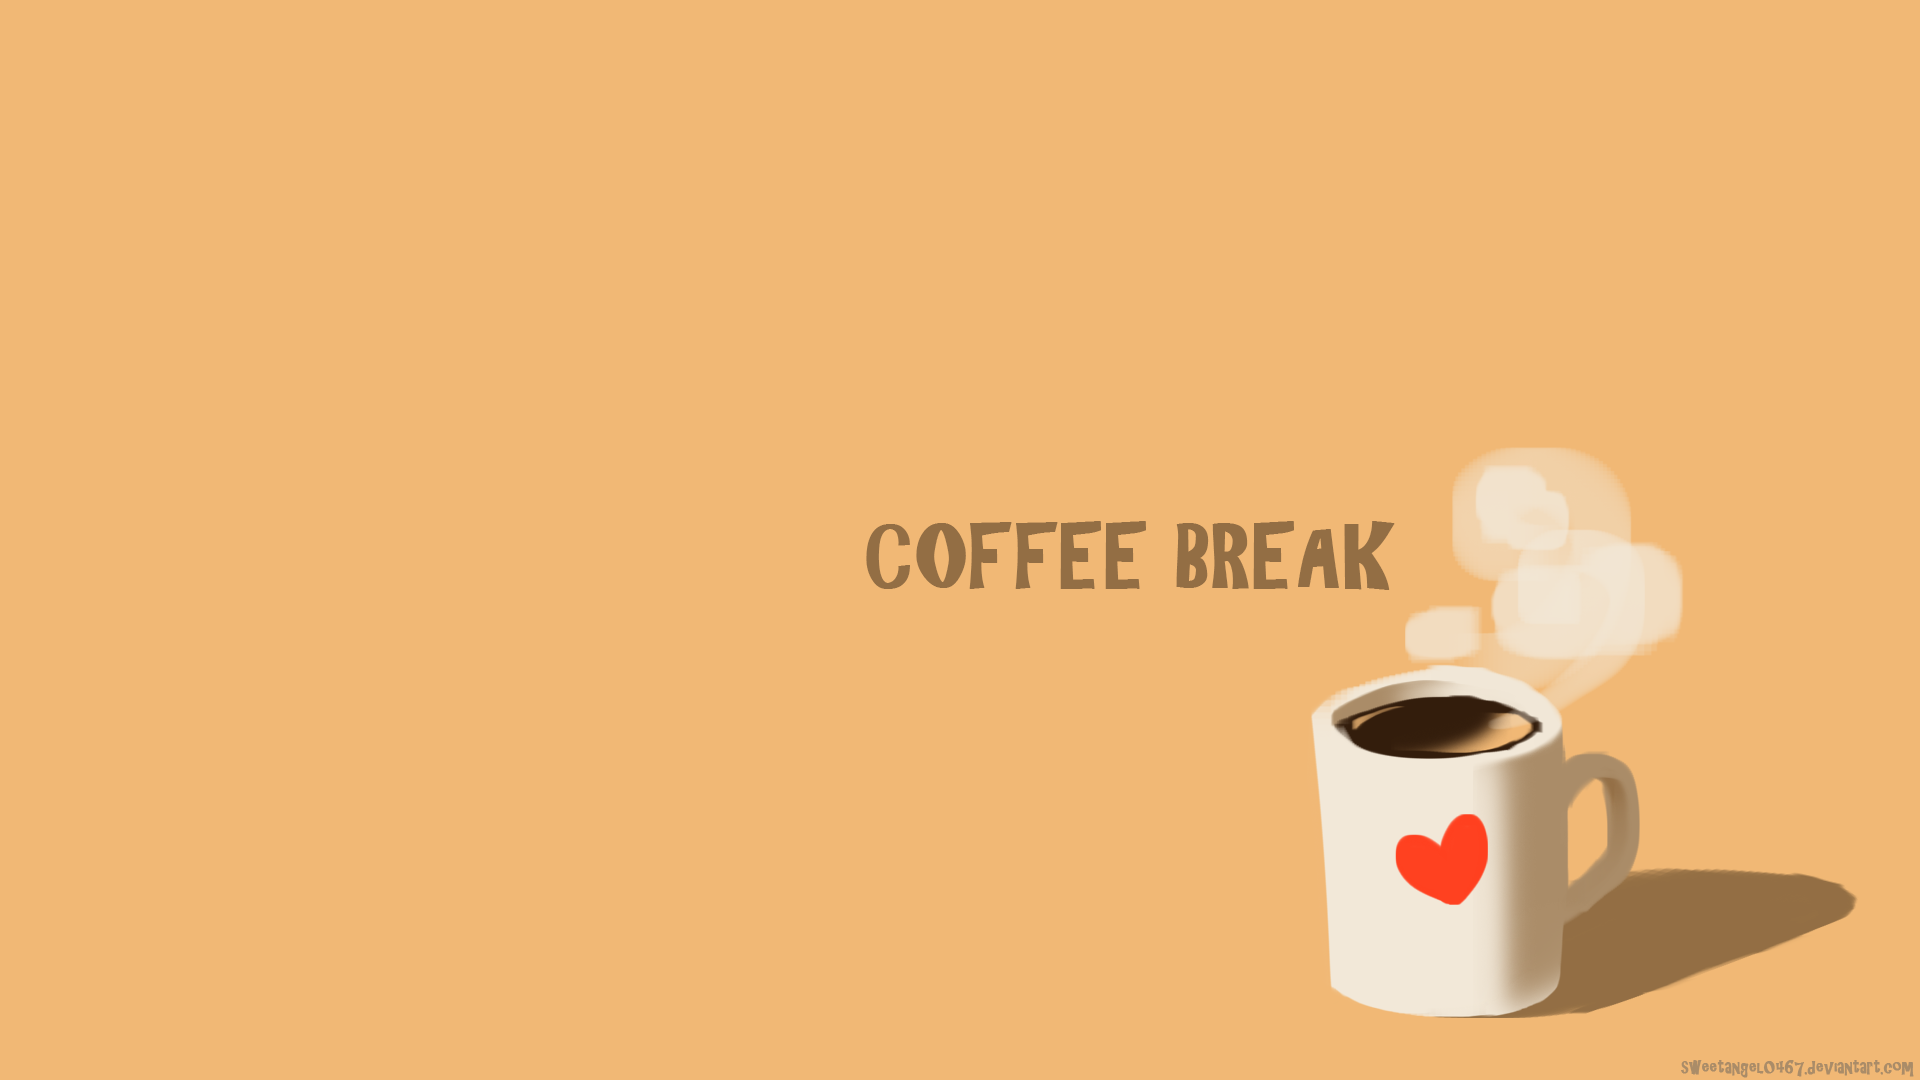 Coffee Break Wallpaper